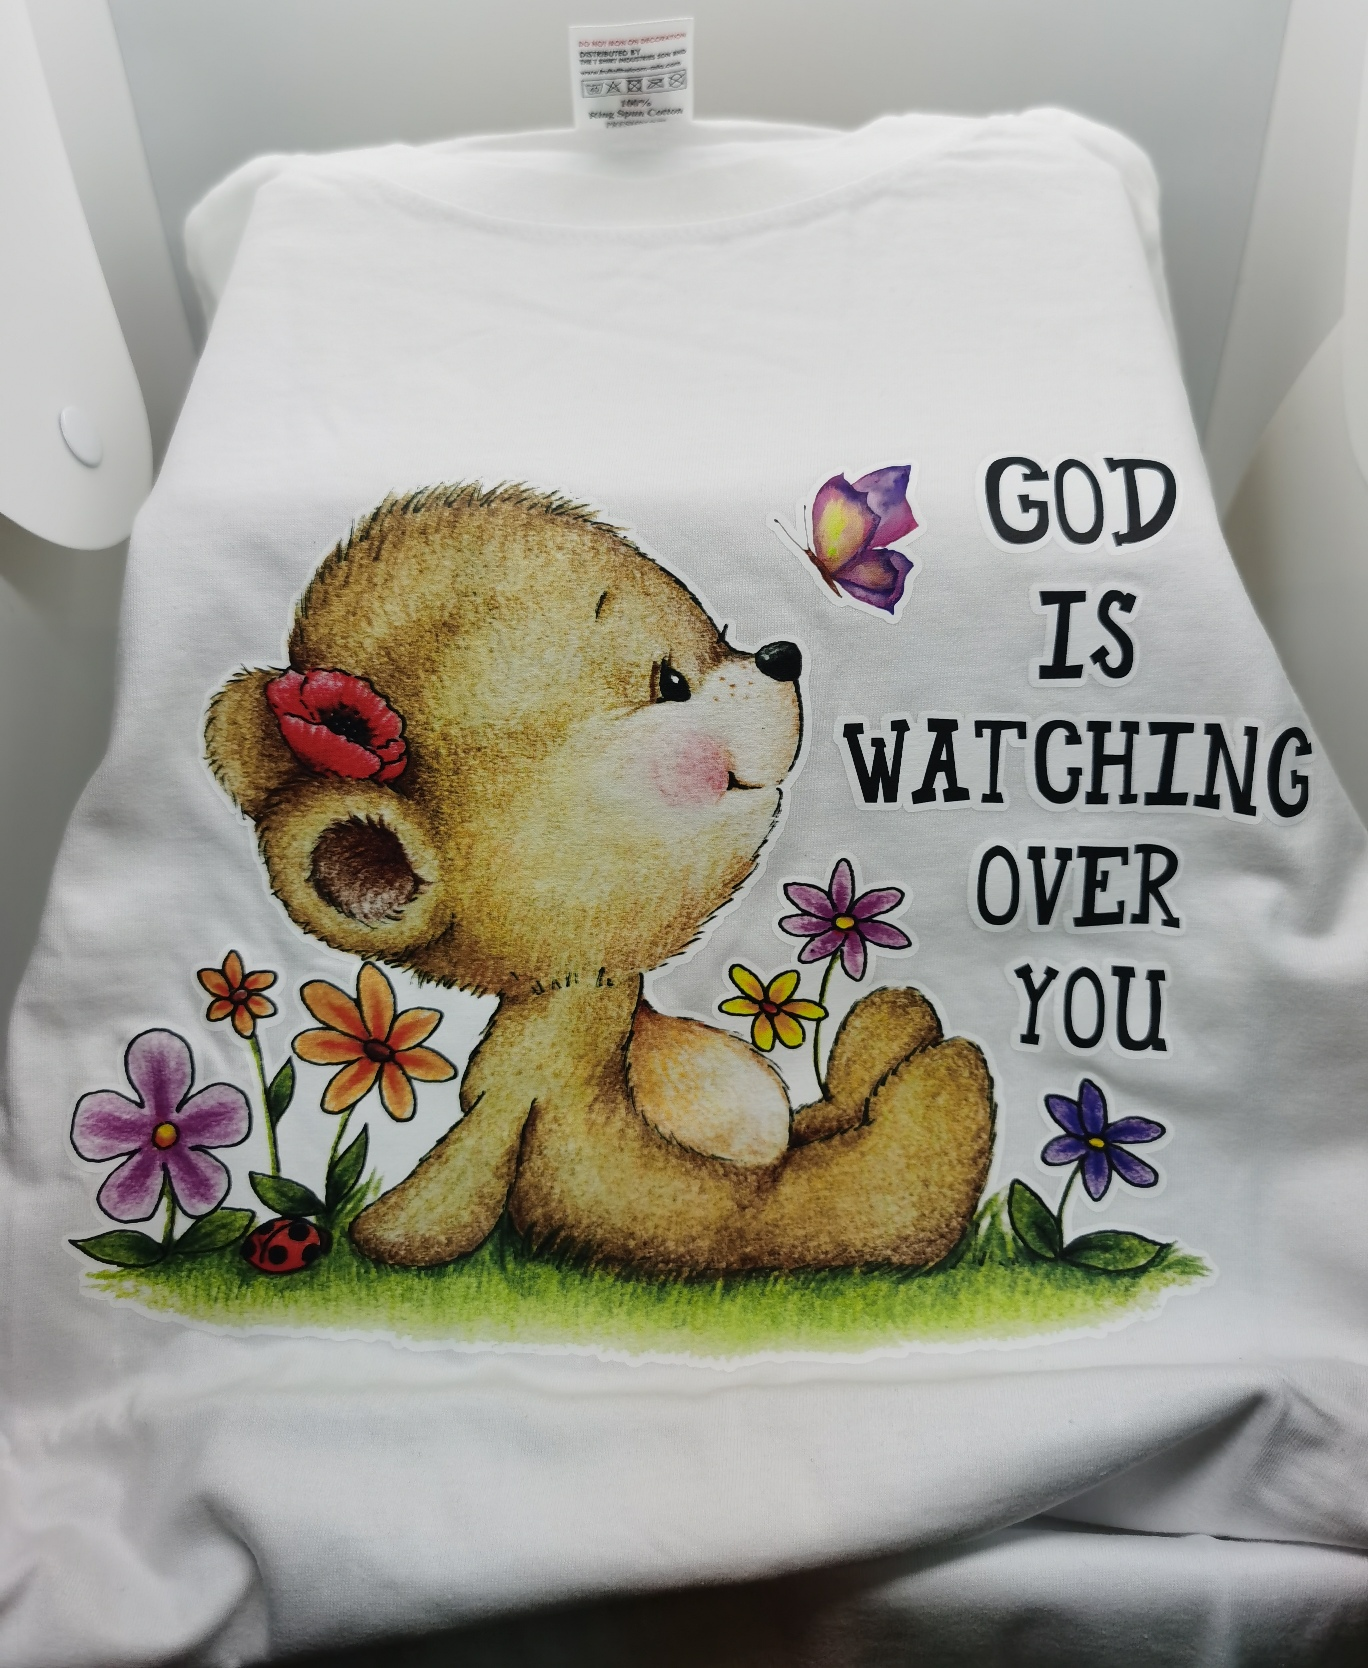 GOD IS WATCHING OVER ME TEE SHIRT